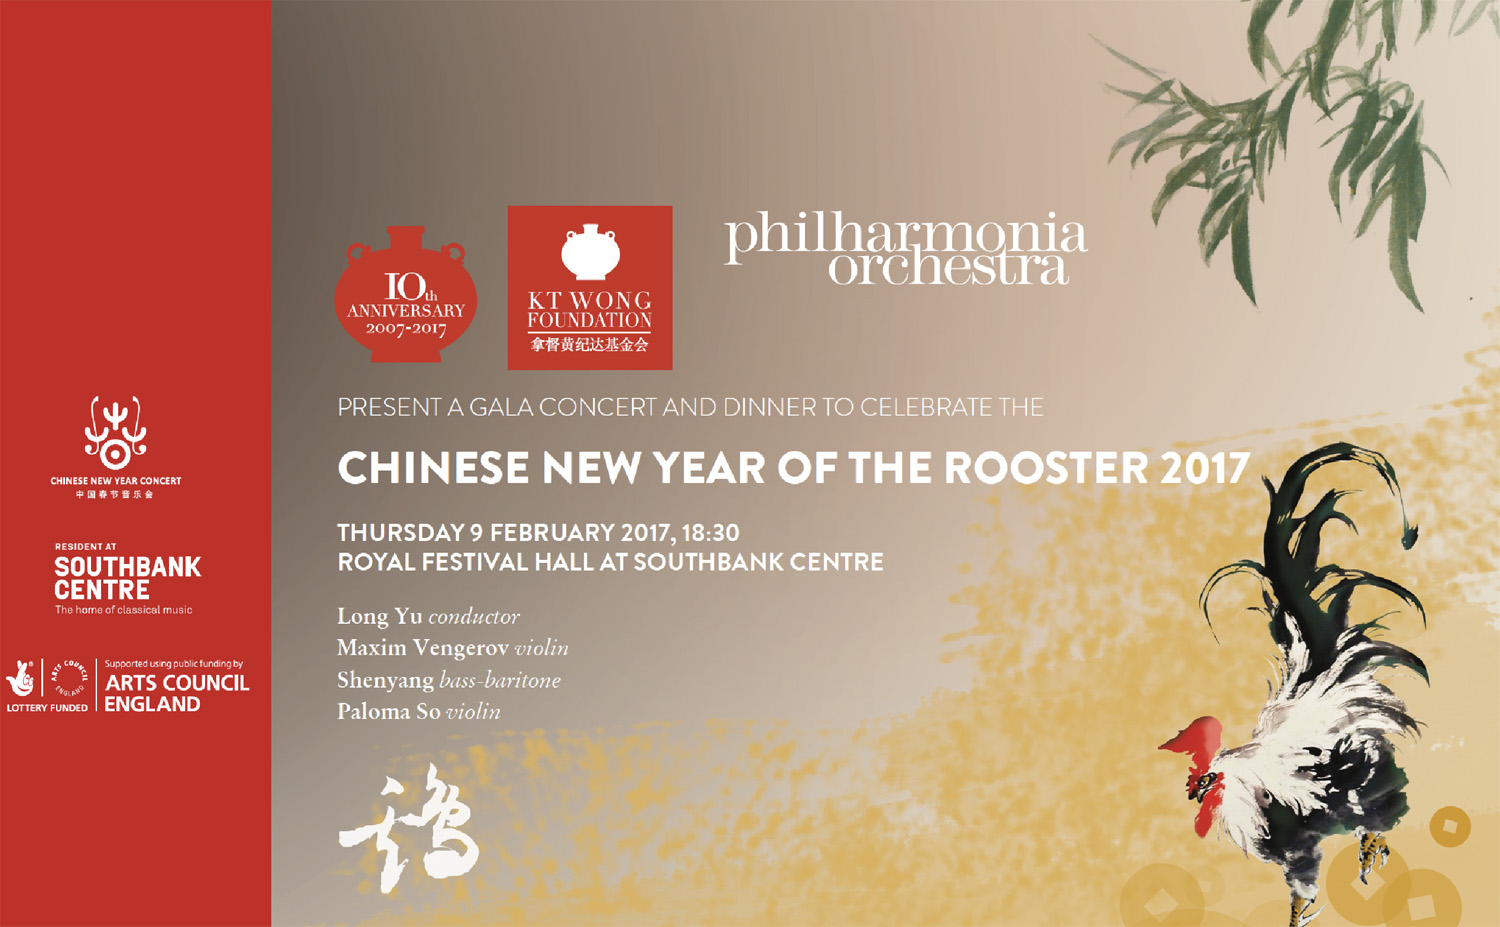 chinese new year of the rooster 2017 - Chinese New Year 2007